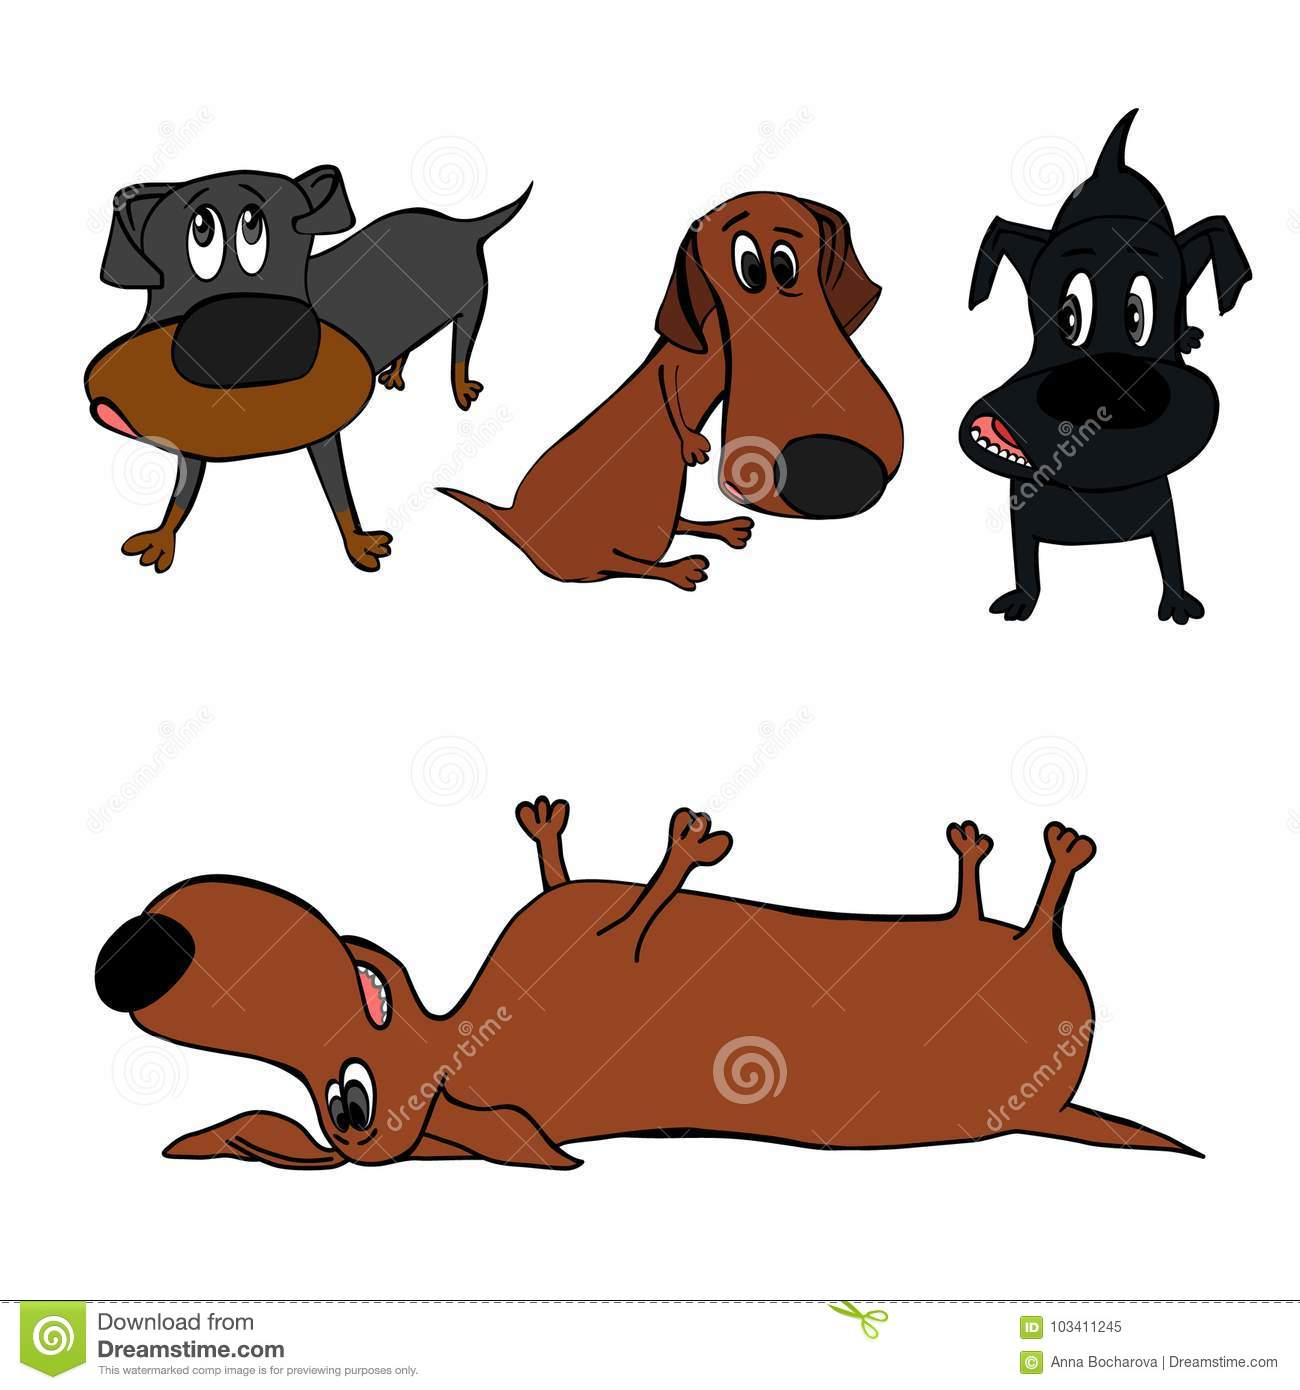 Dog Character Image Stock Vector Illustration Of Brown 103411245